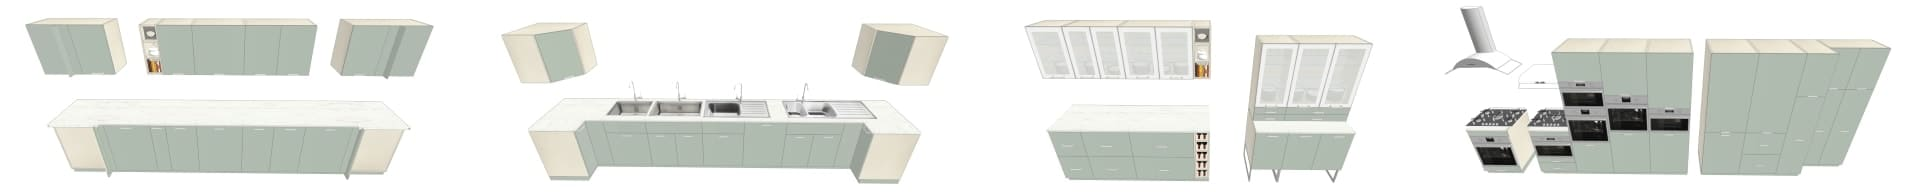 COLLECTION 3D IKEA KALLARP VERT CL